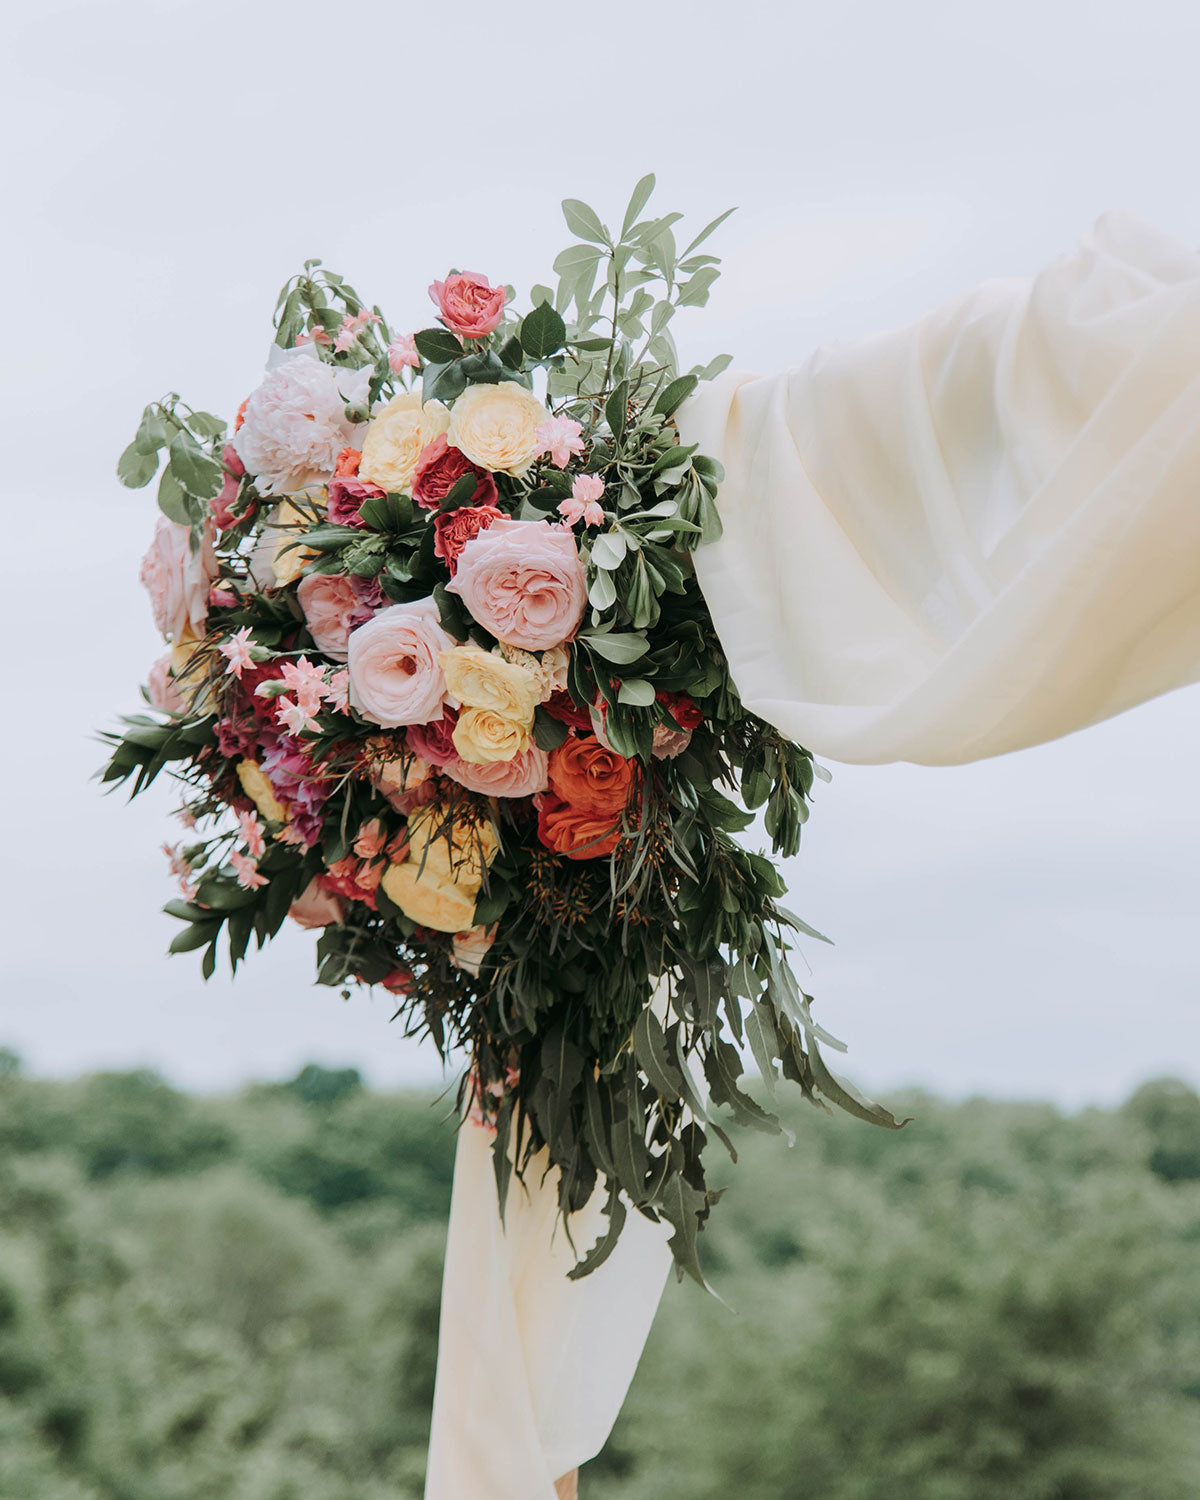 Boho Wedding Trends You Need To Know About